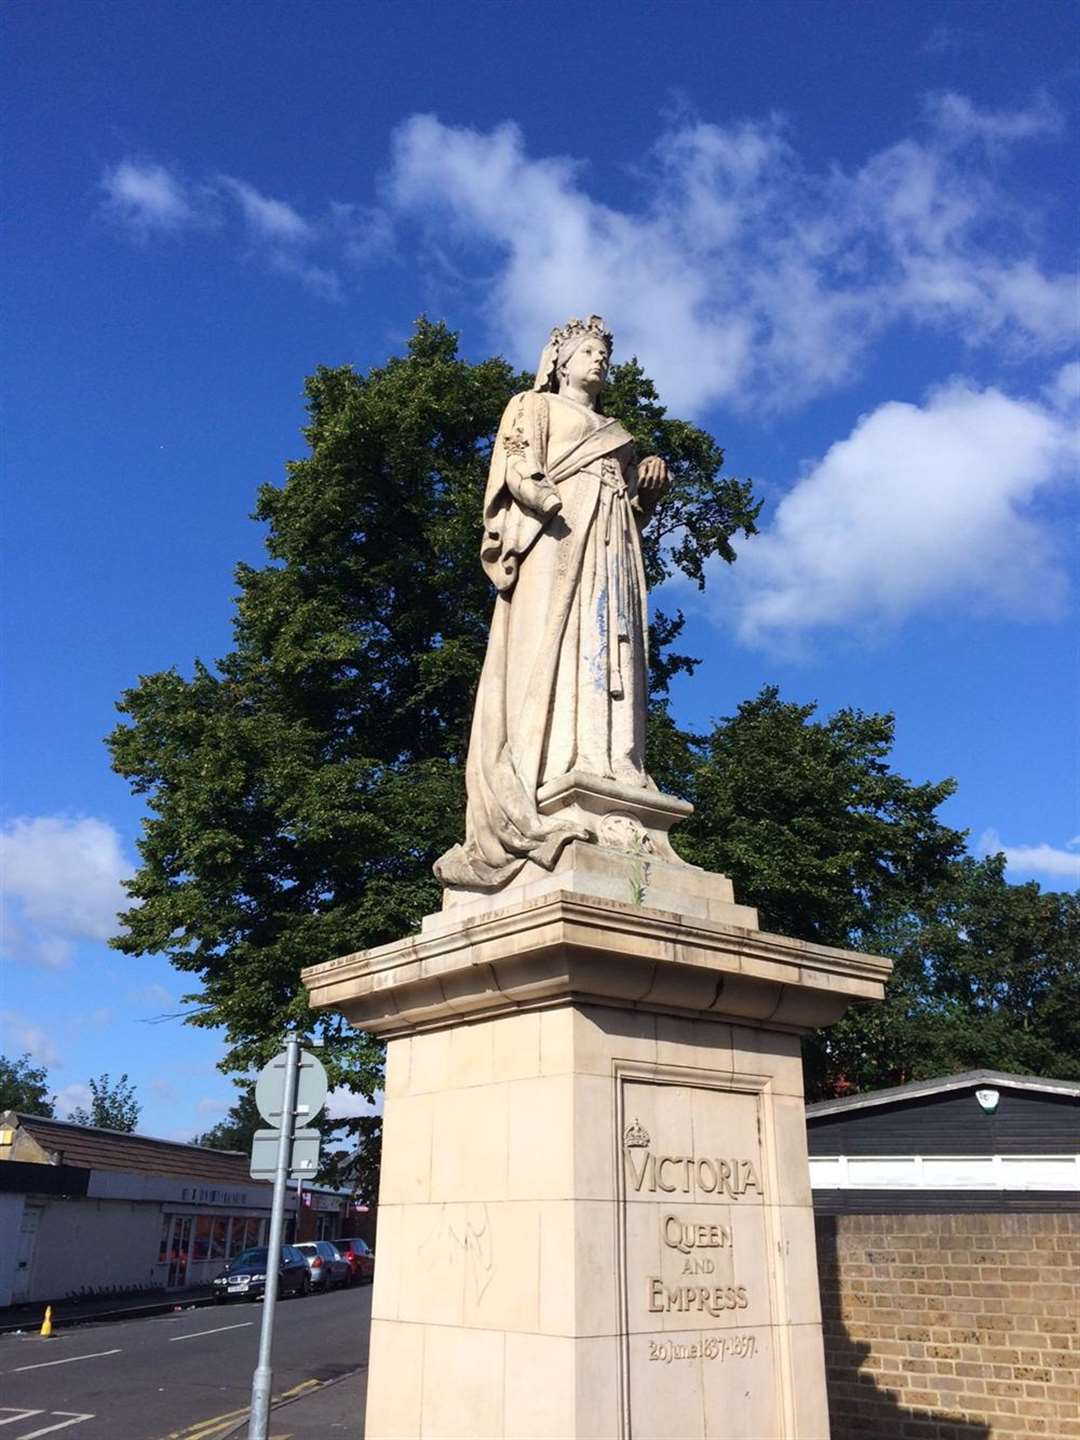 The Victoria statue is a listed monument and has been standing in the town for more than a century.